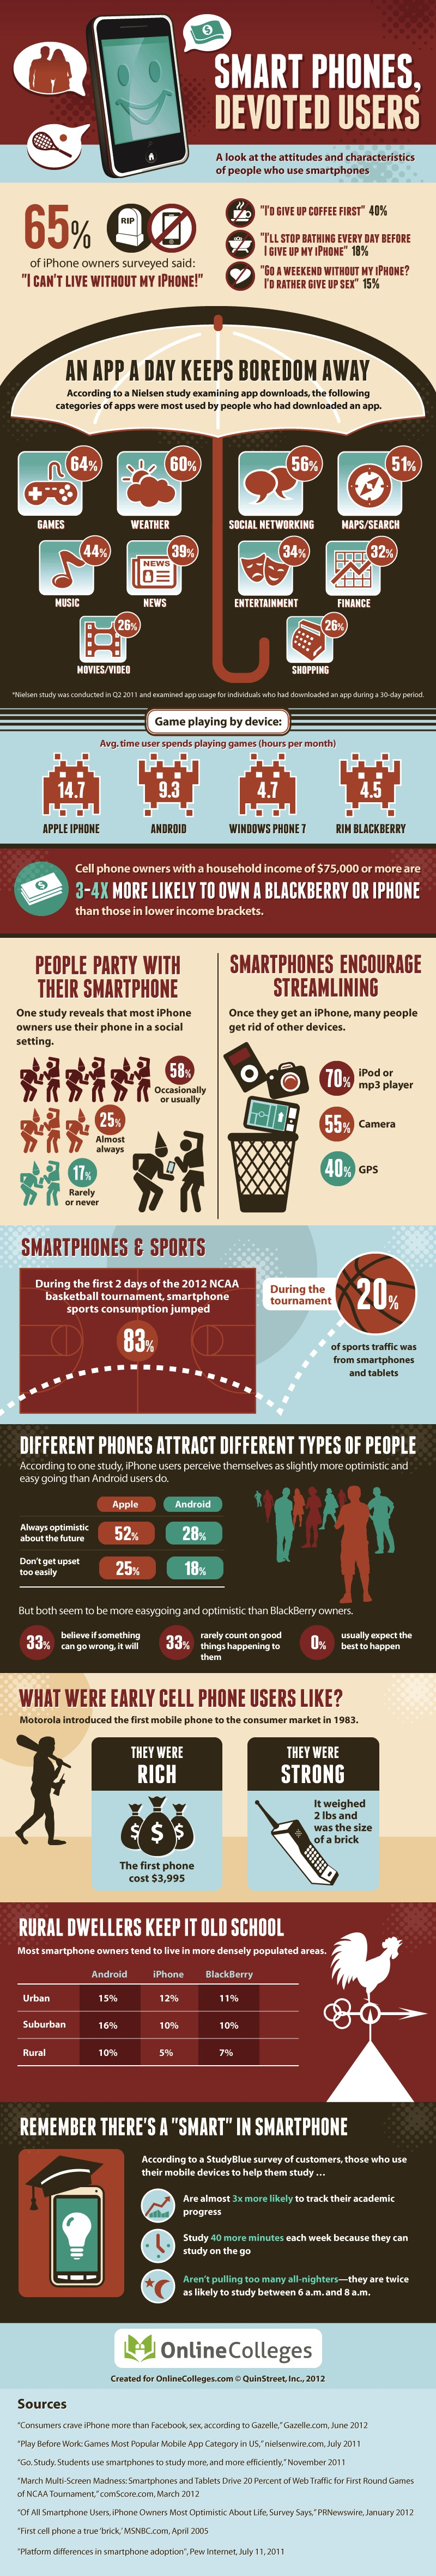 Role of Smartphones in internet addiction